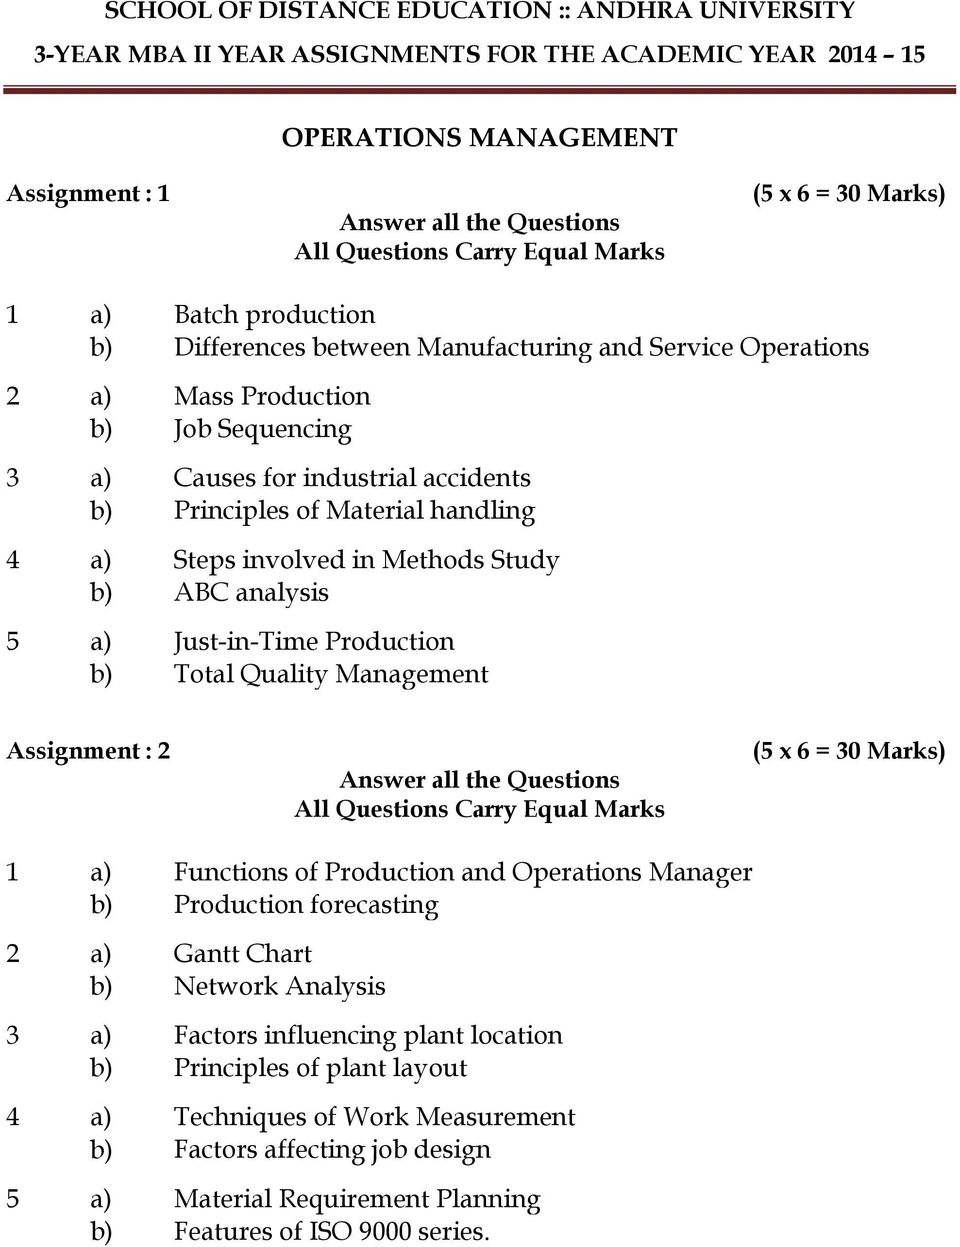 Management 1 a) Functions of Production and Operations Manager b) Production forecasting 2 a) Gantt Chart b) Network Analysis 3 a) Factors influencing plant